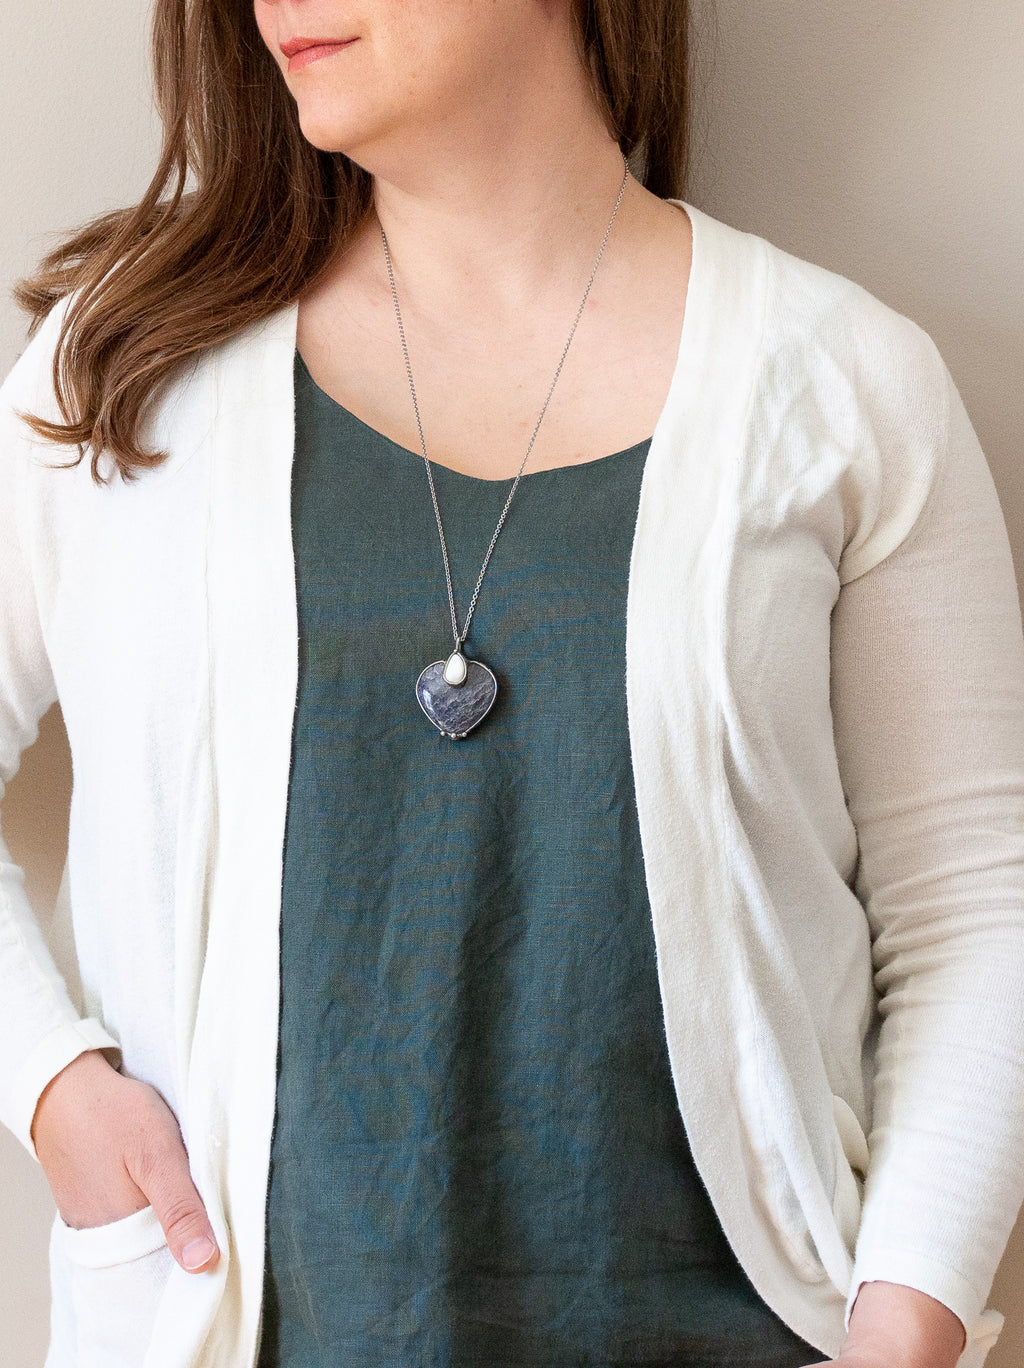 blue and white heart gemstone crystal necklace talisman on woman in blue top with white cadigan